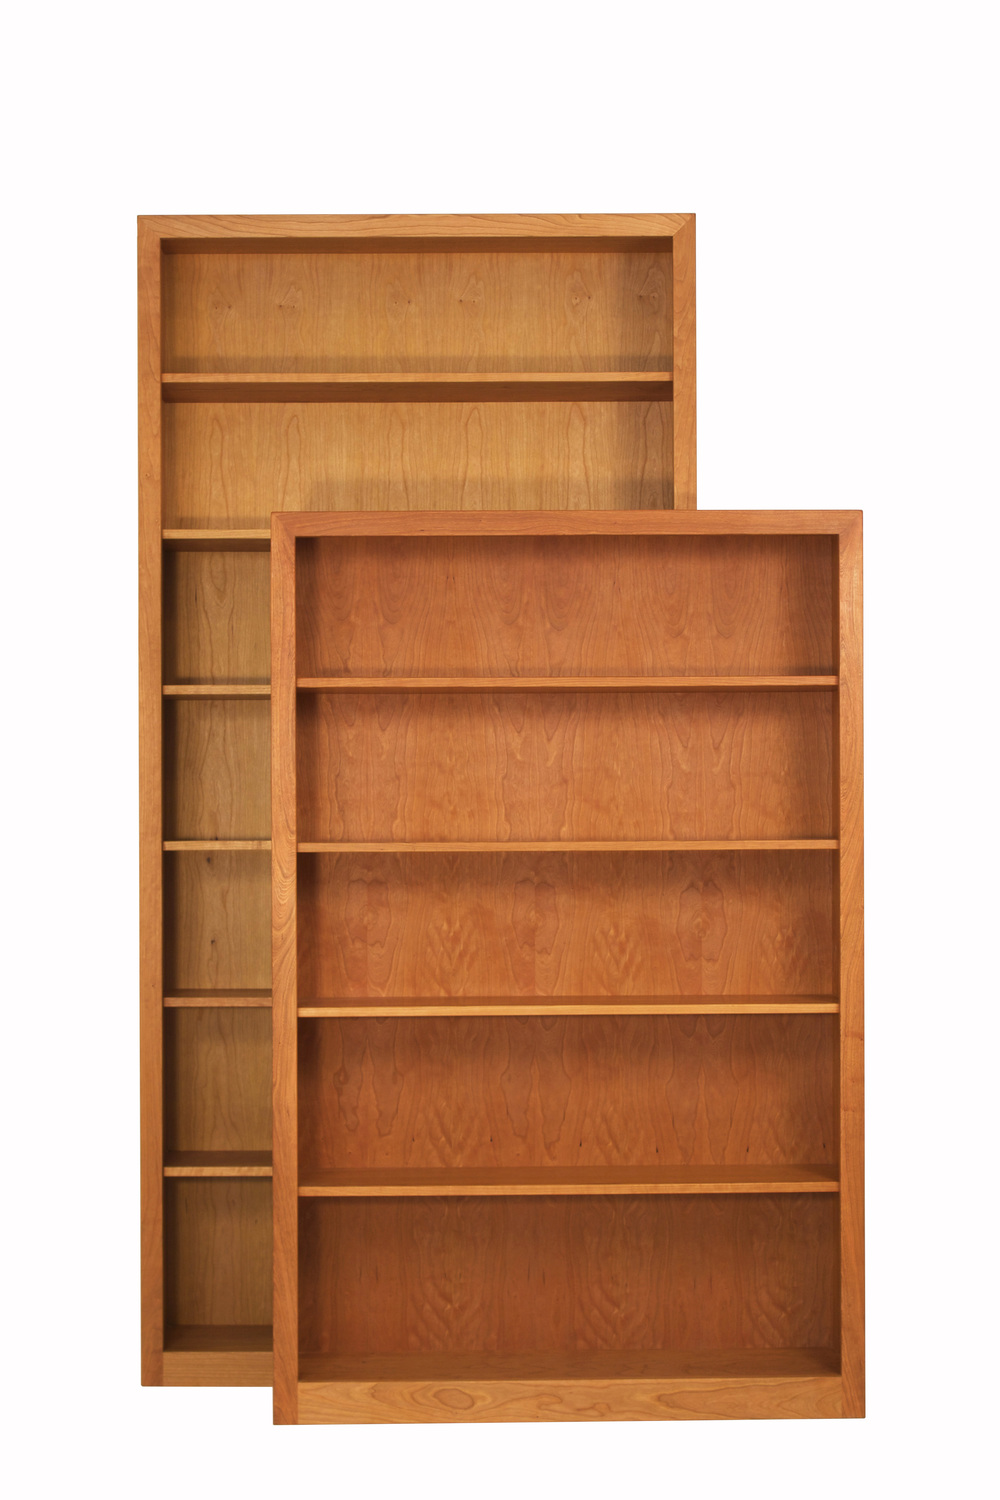 "42"" Wide Bookcases with Fame-Frames in Cherry"